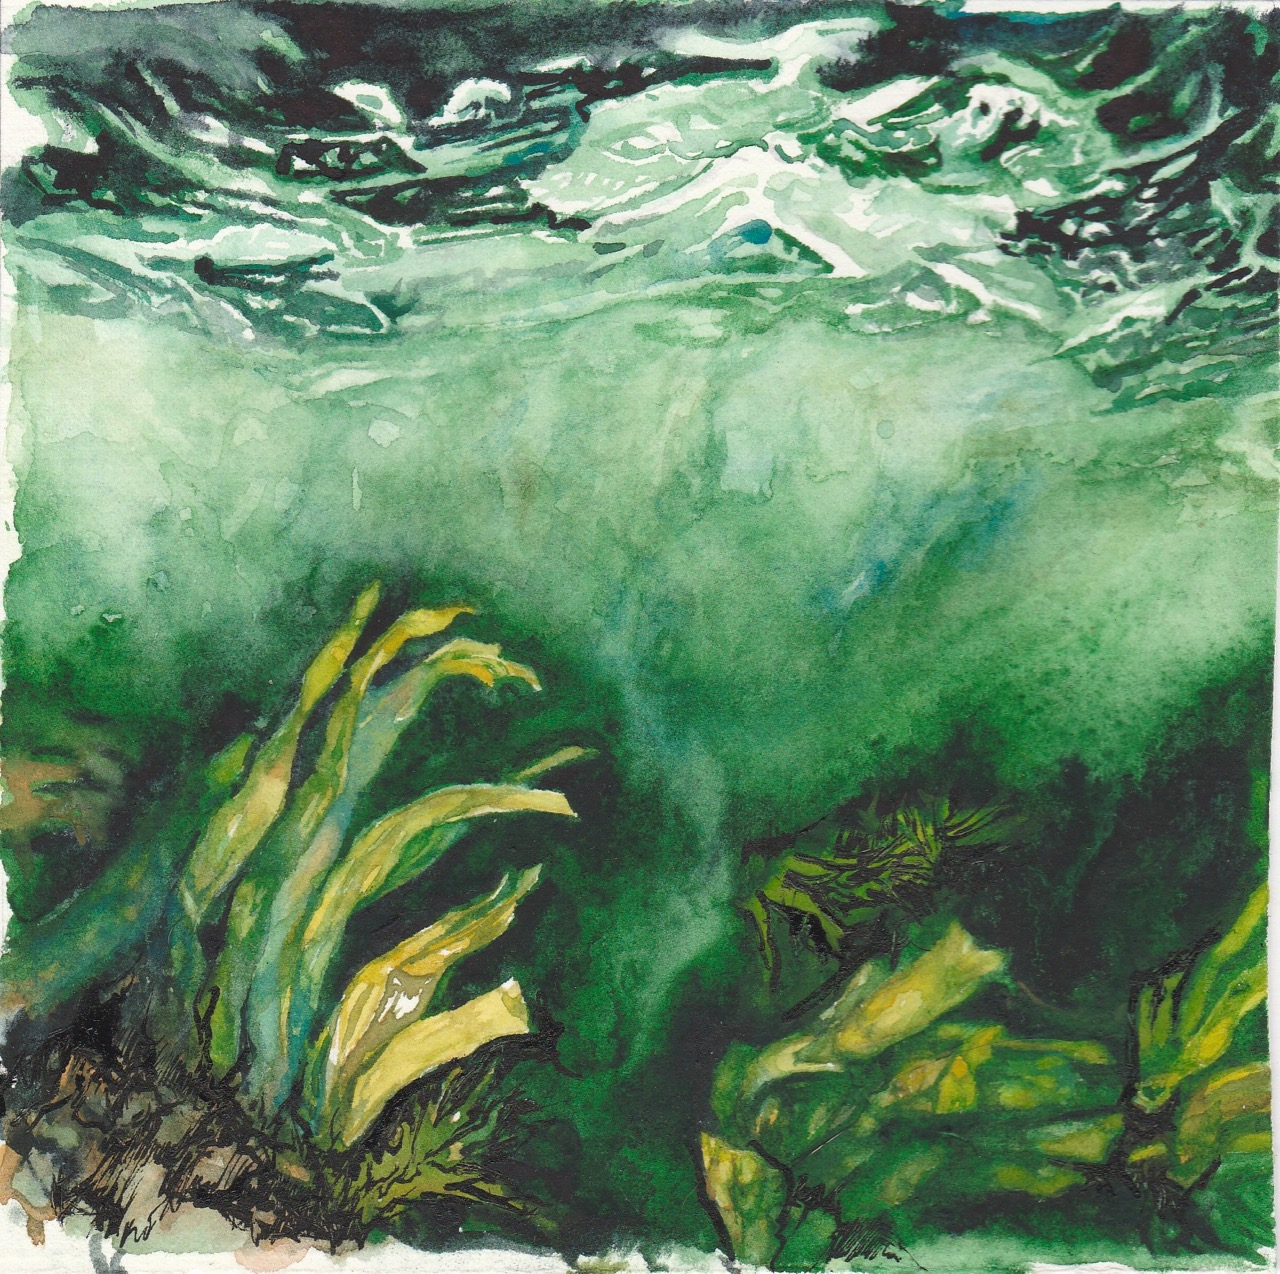 Painting of the ocean floor by Leanne Cadden